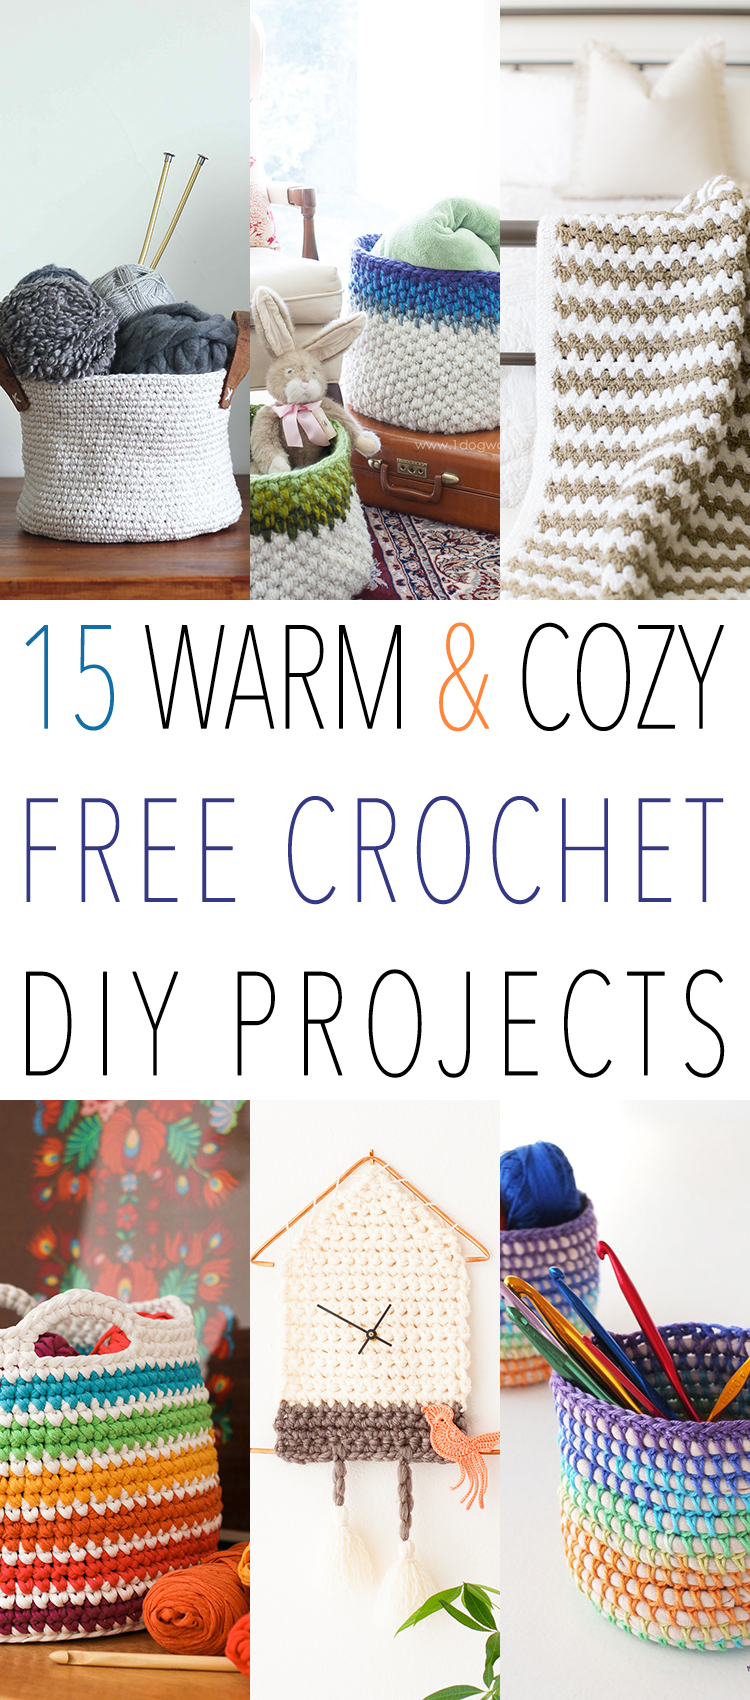 Free Diy Projects 15 Warm And Cozy Free Crochet Diy Projects The Cottage Market